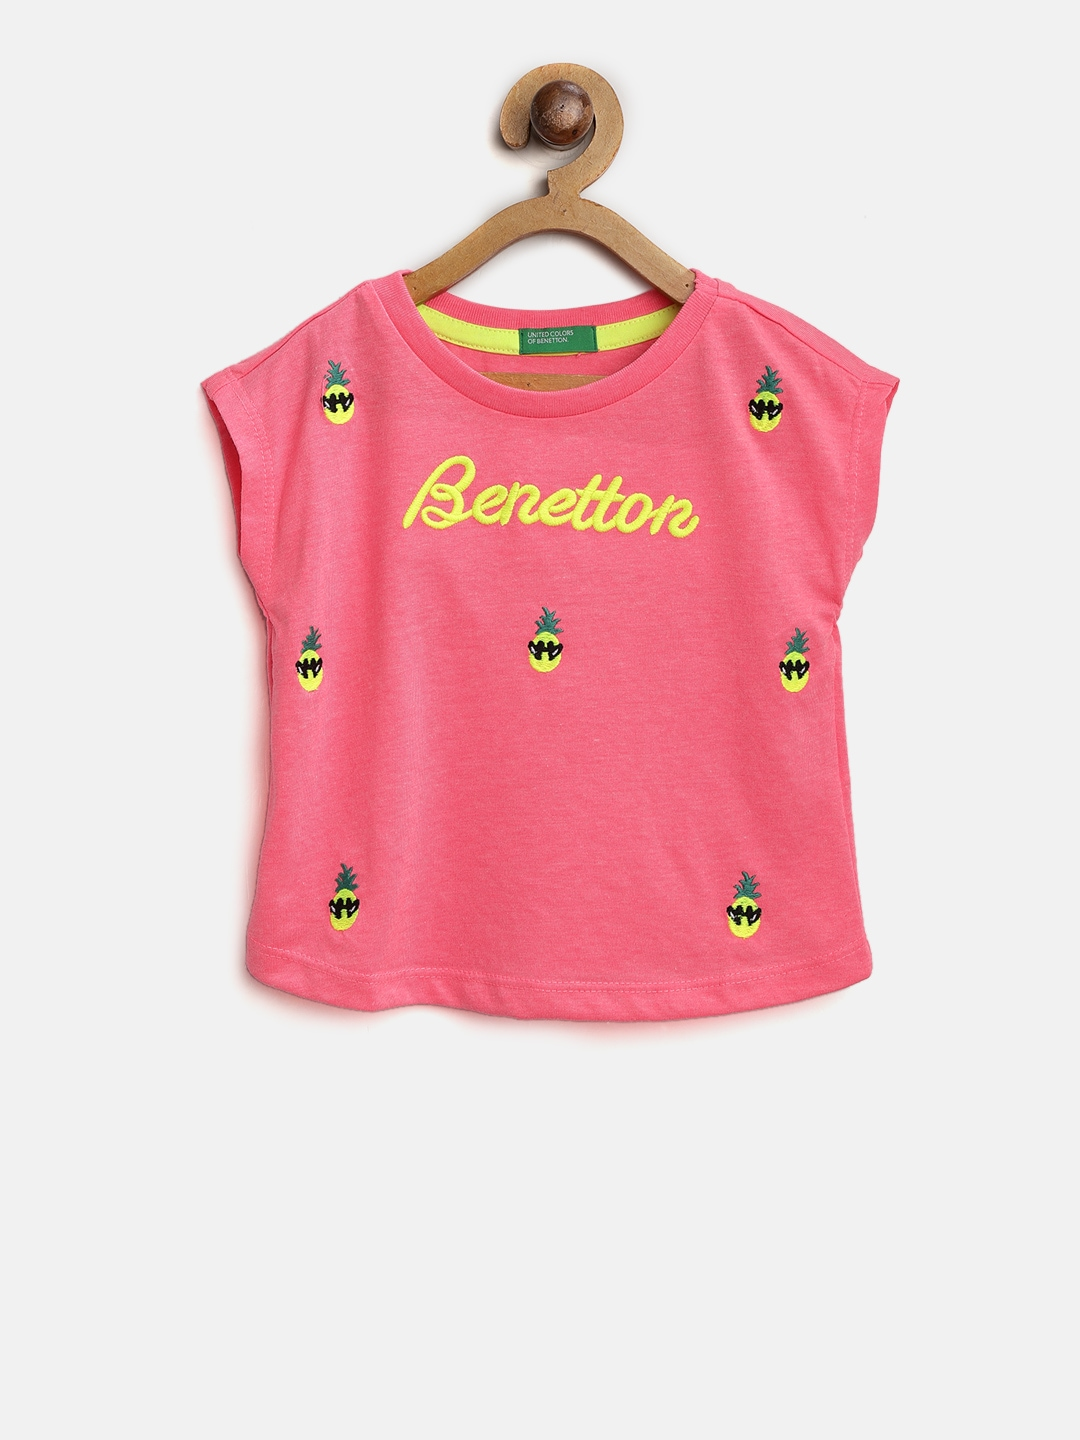 Girls Tops - Buy Stylish Top for Girls Online in India  e5e144e0c